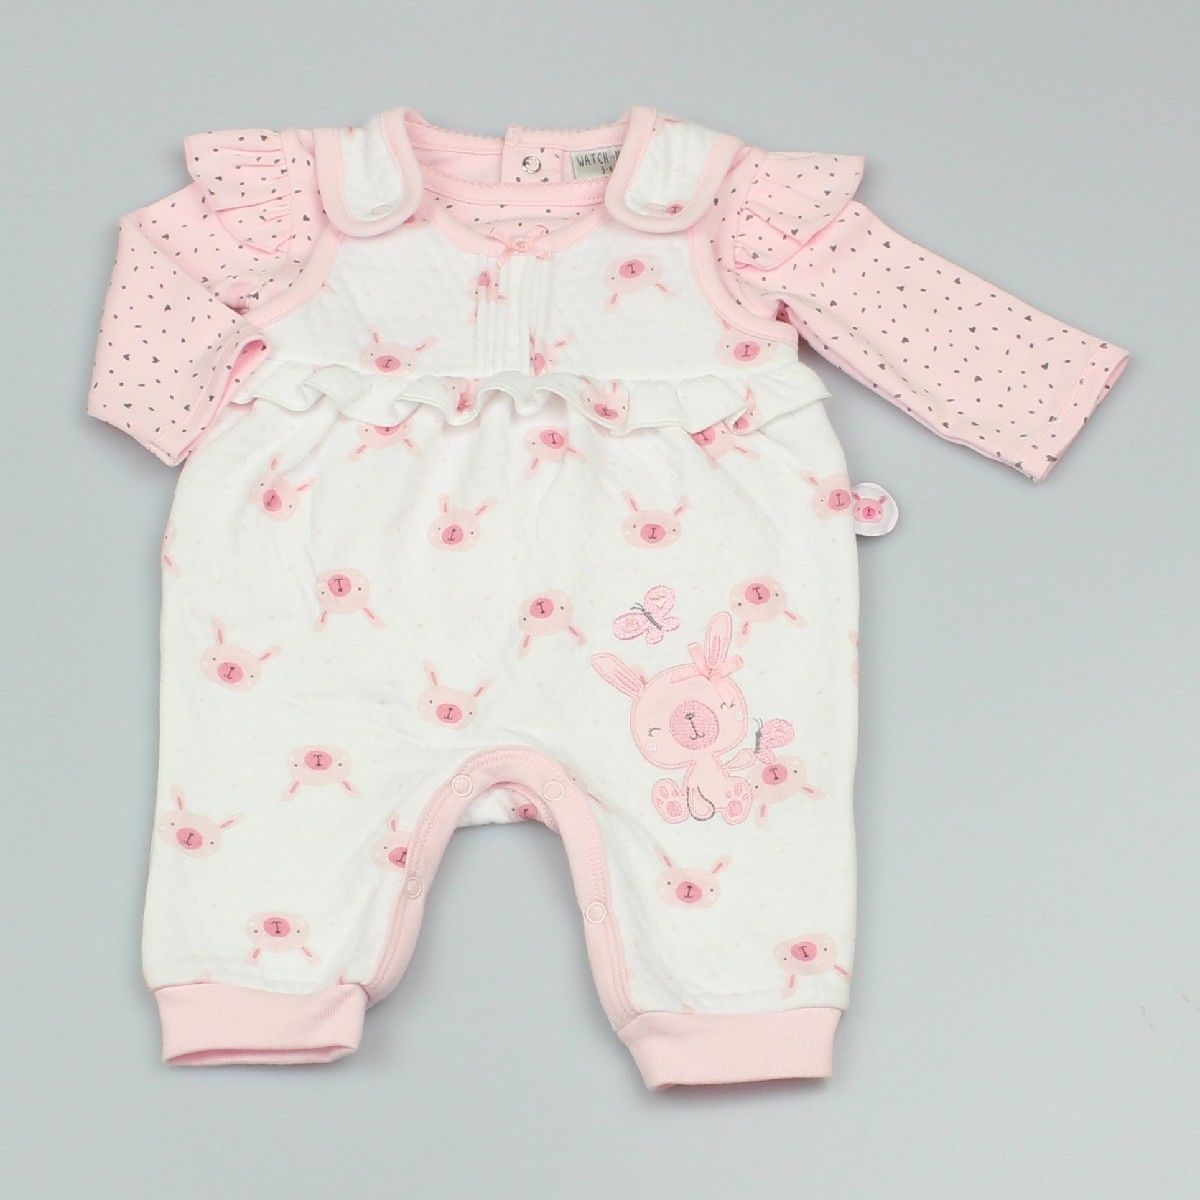 2pc Set - Baby Supersoft Dungaree With Cotton Long Sleeve T-shirt